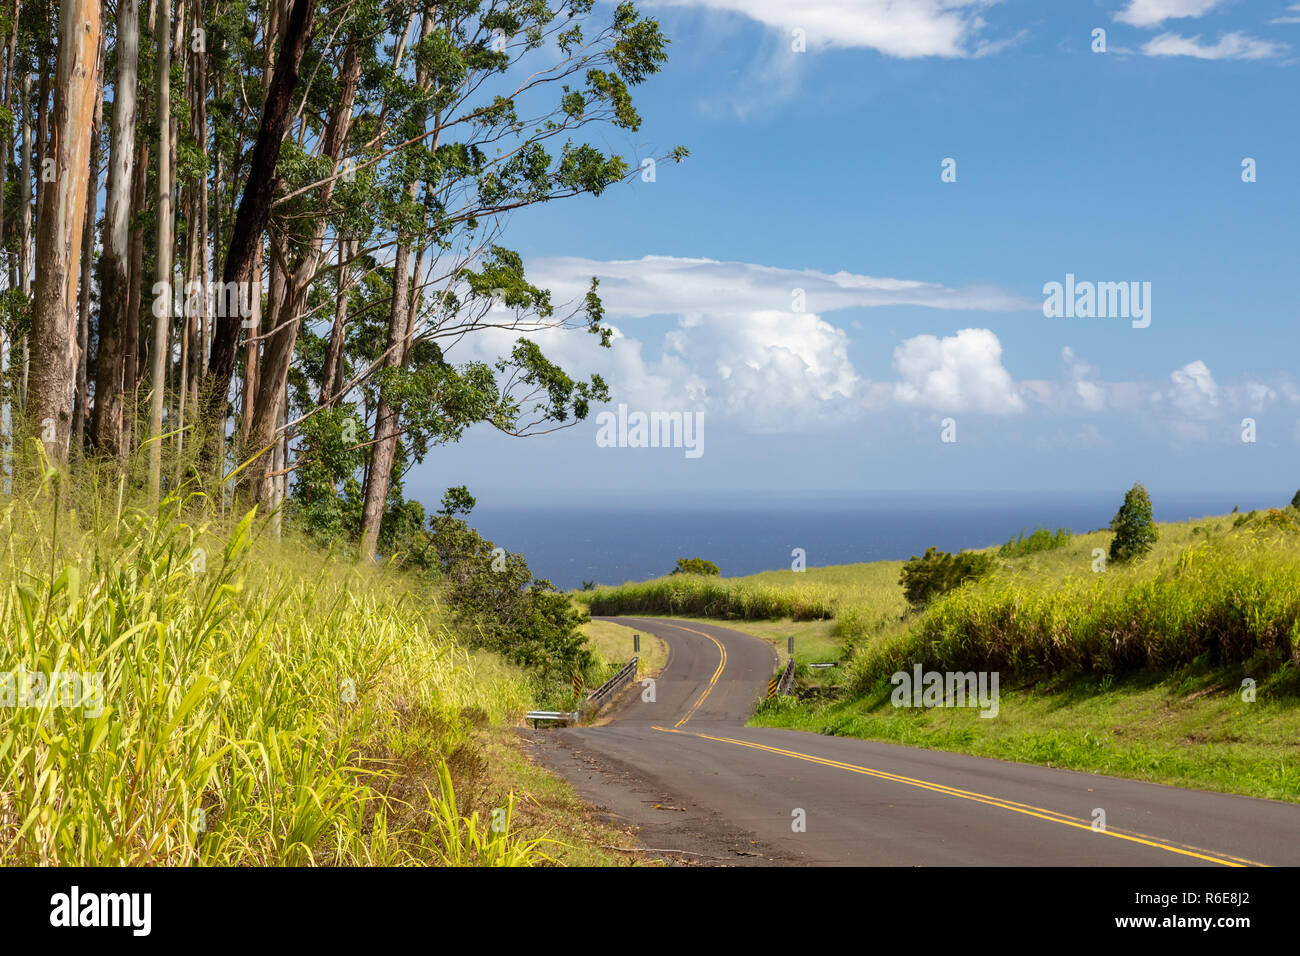 Pa'auilo, Hawaii - Eucalyptus tree plantations line a rural road above the Pacific Ocean. Thousands of acres of eucalyptus trees were planted after th - Stock Image